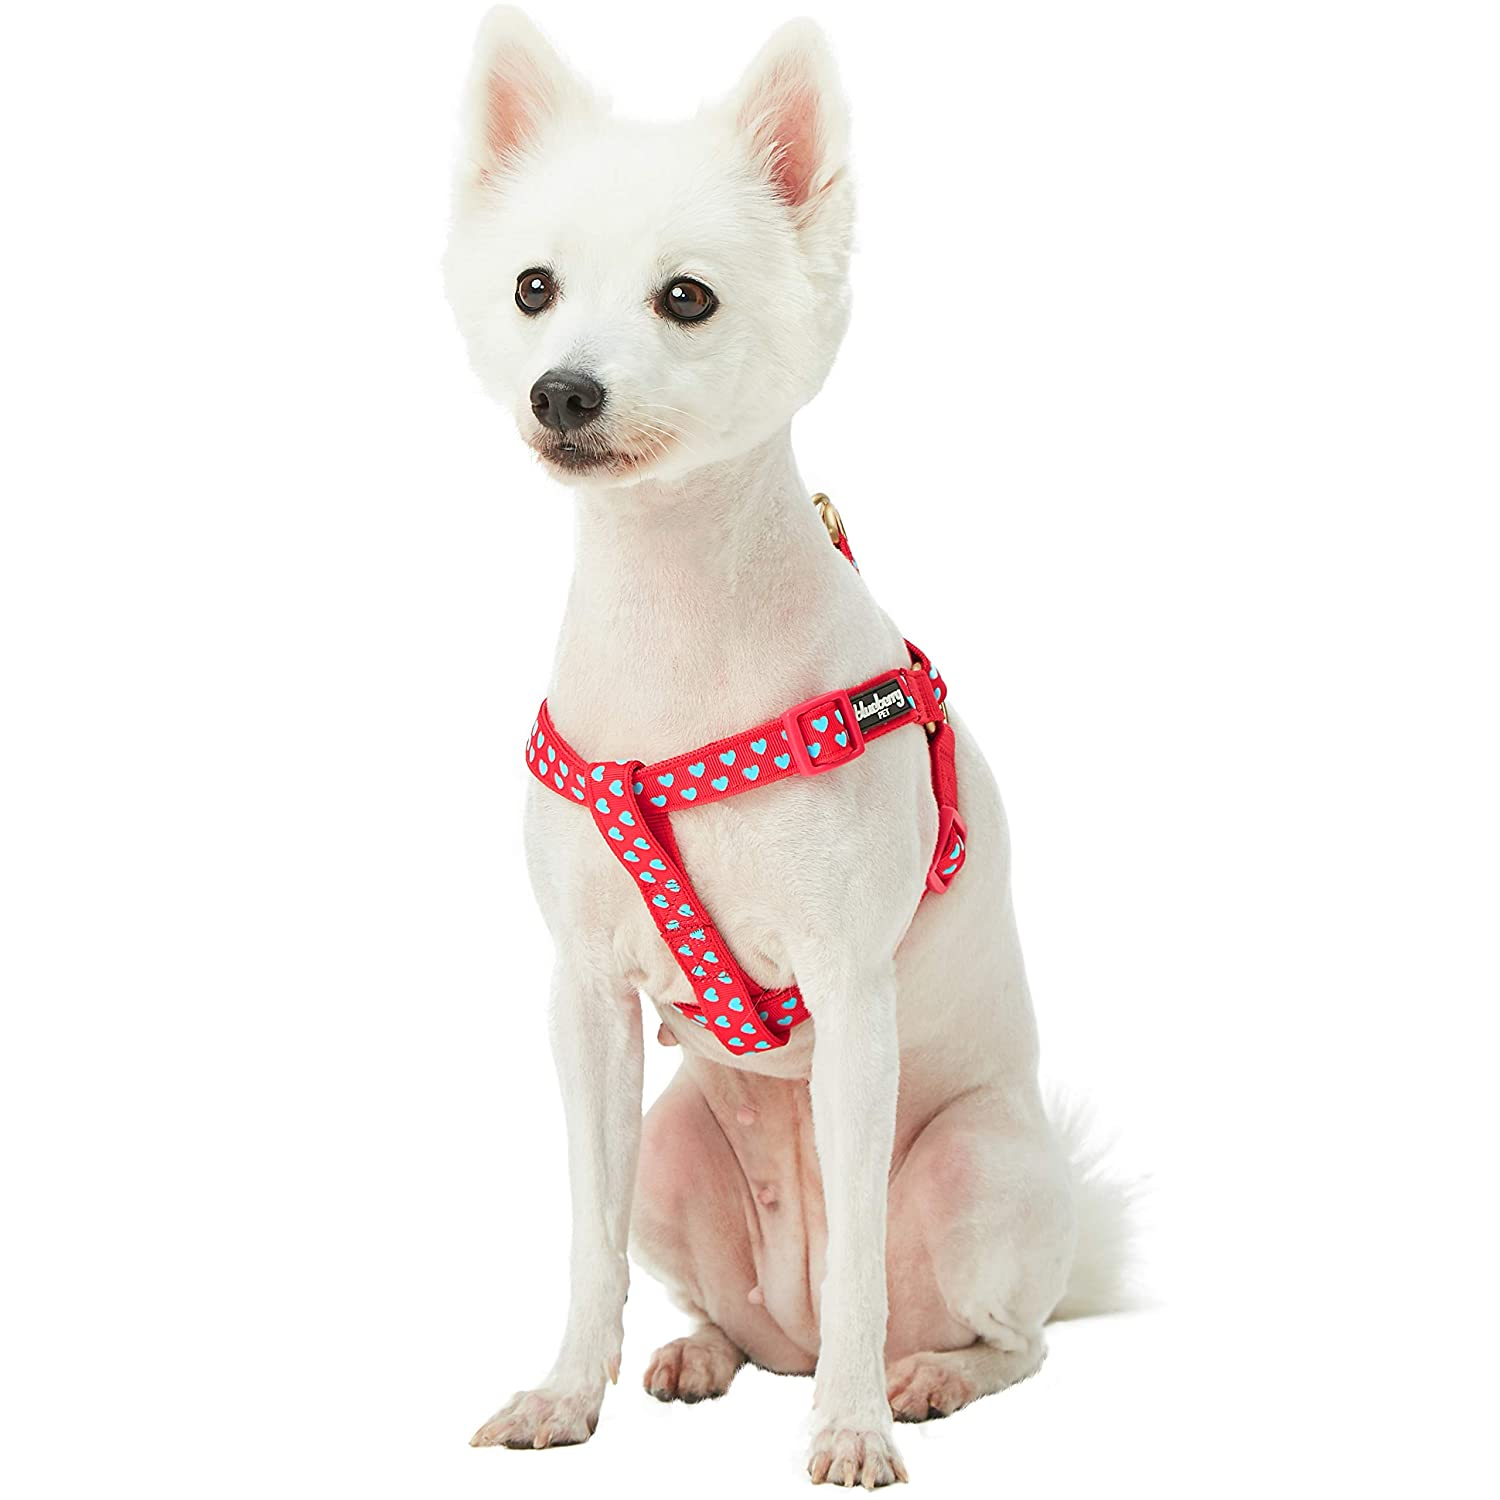 Lust Red (16.5\ Lust Red (16.5\ blueeberry Pet Step-in Velvety Sky bluee Heart Flocking Dog Harness in Lust Red, Chest Girth 16.5  21.5 , Small, Adjustable Harnesses for Dogs